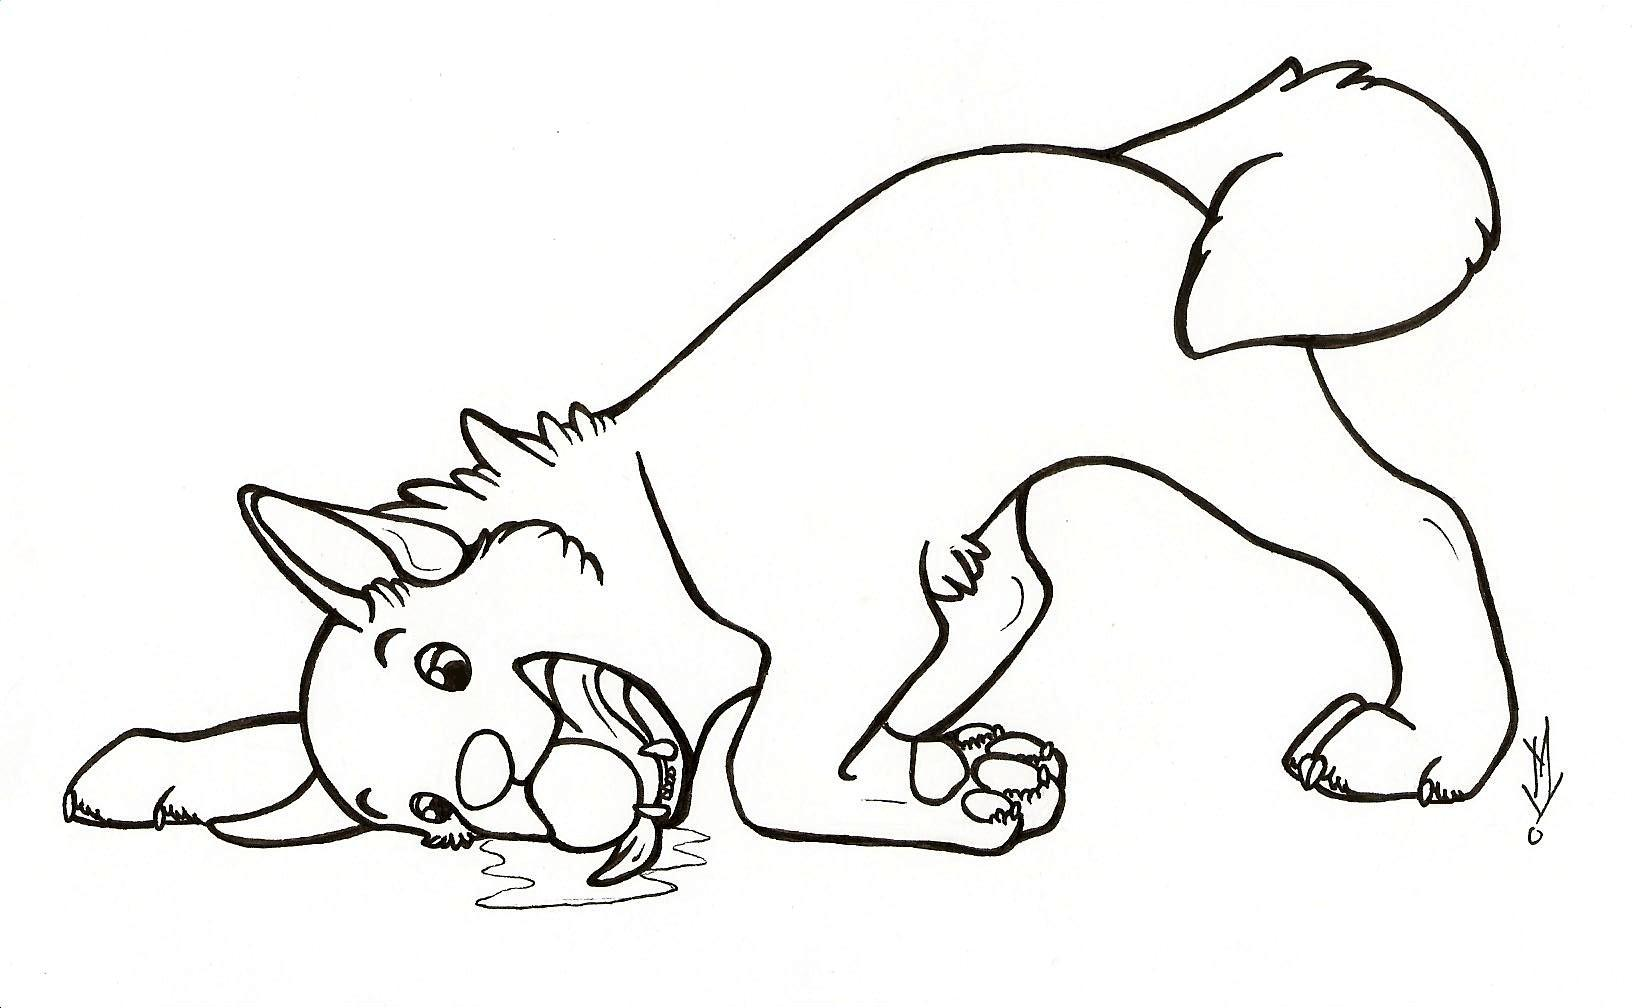 Boxer Dog Coloring Pages At Getdrawings